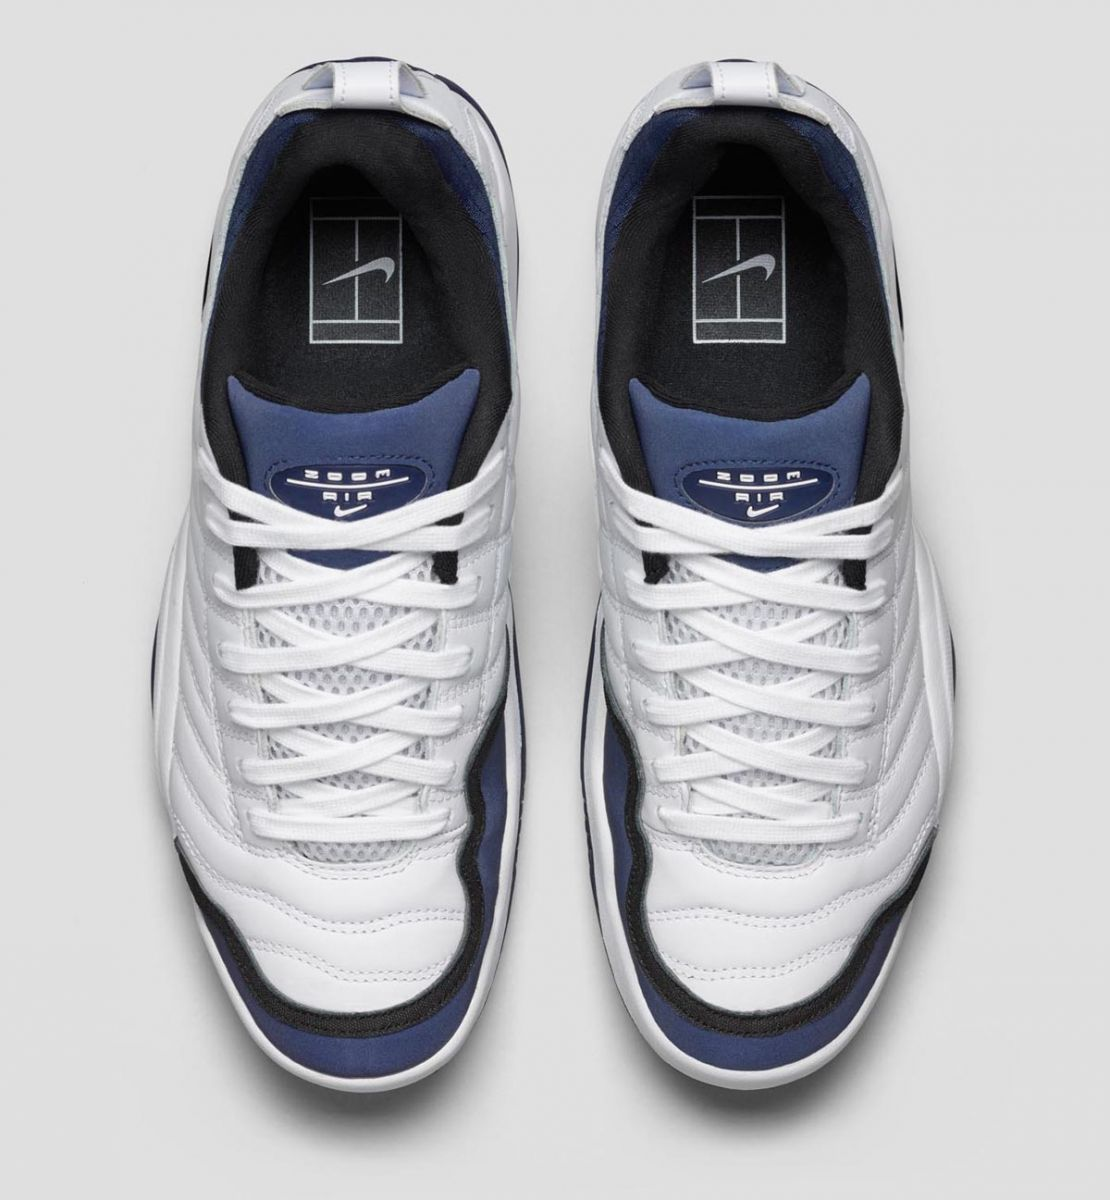 hot sale online b6b86 1ca33 UPDATE 820 The Nike Air Oscillate retro will release on Aug. 24 at Nike  Sportswear retailers. Nike Pete Sampras Ad